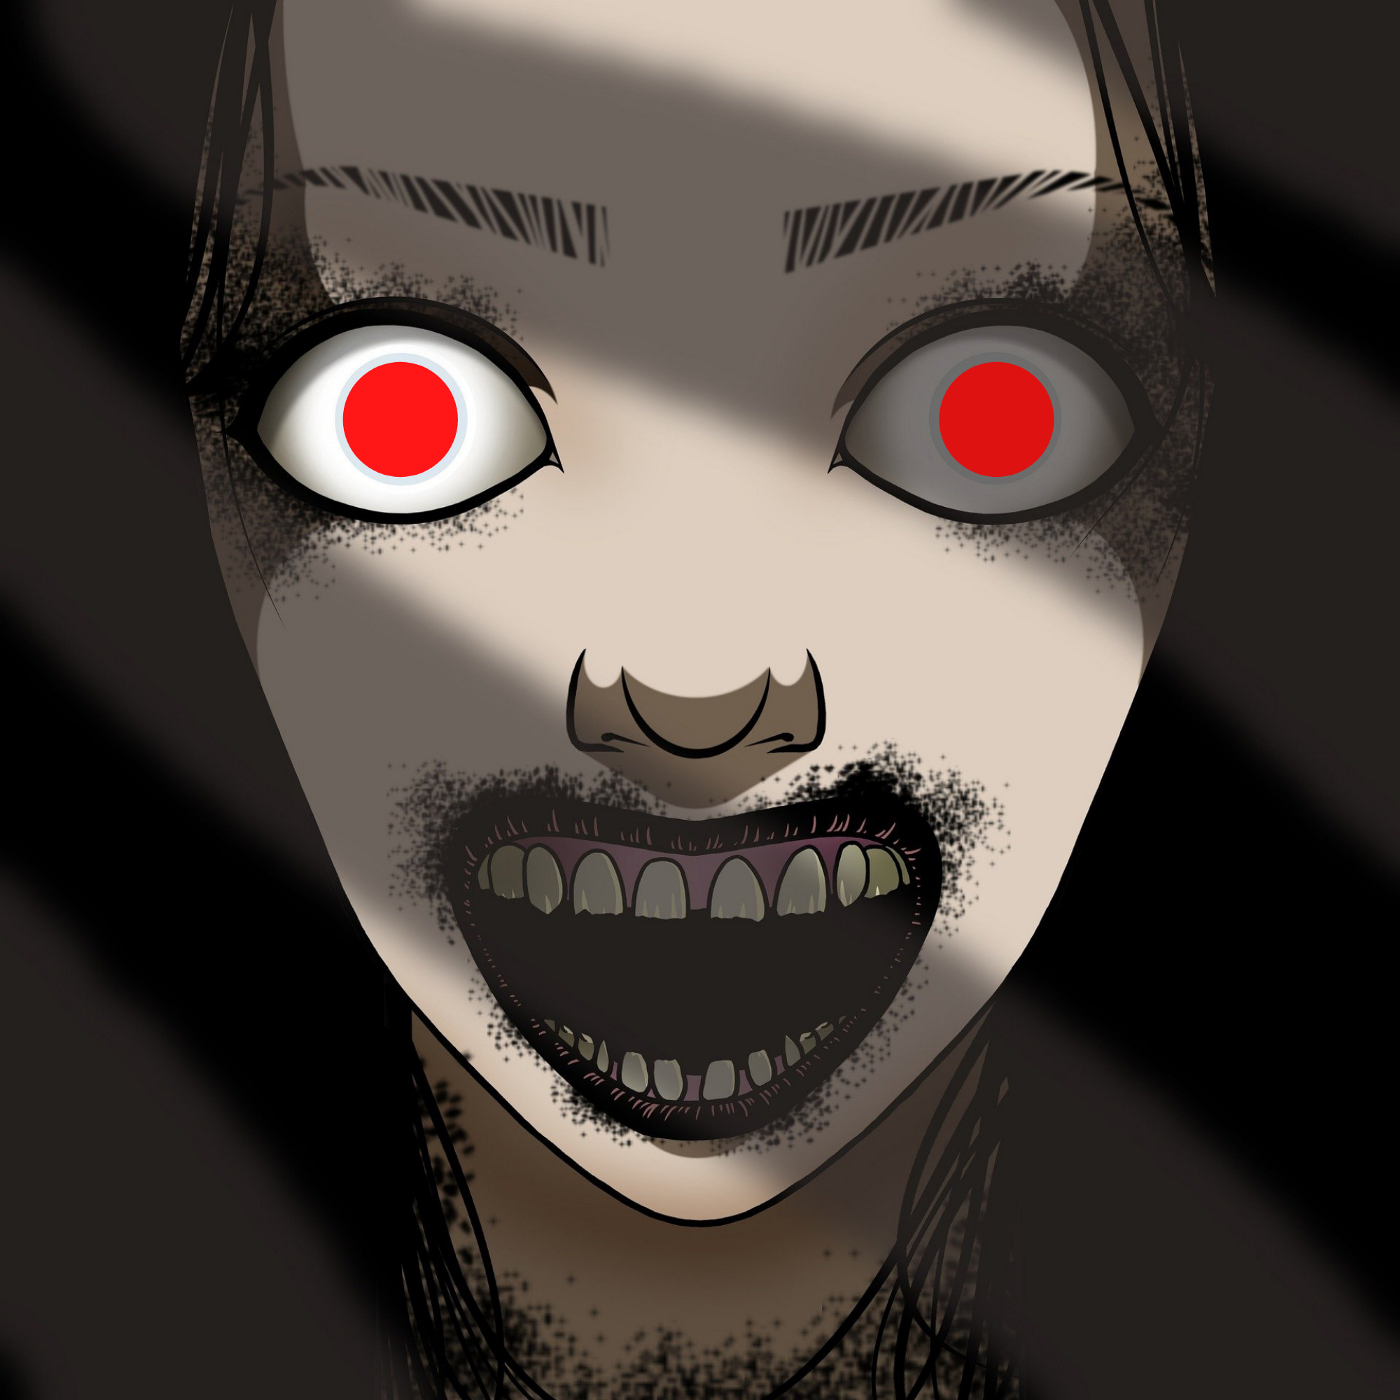 Illustration of a Pontianak with red eyes, open jaws.